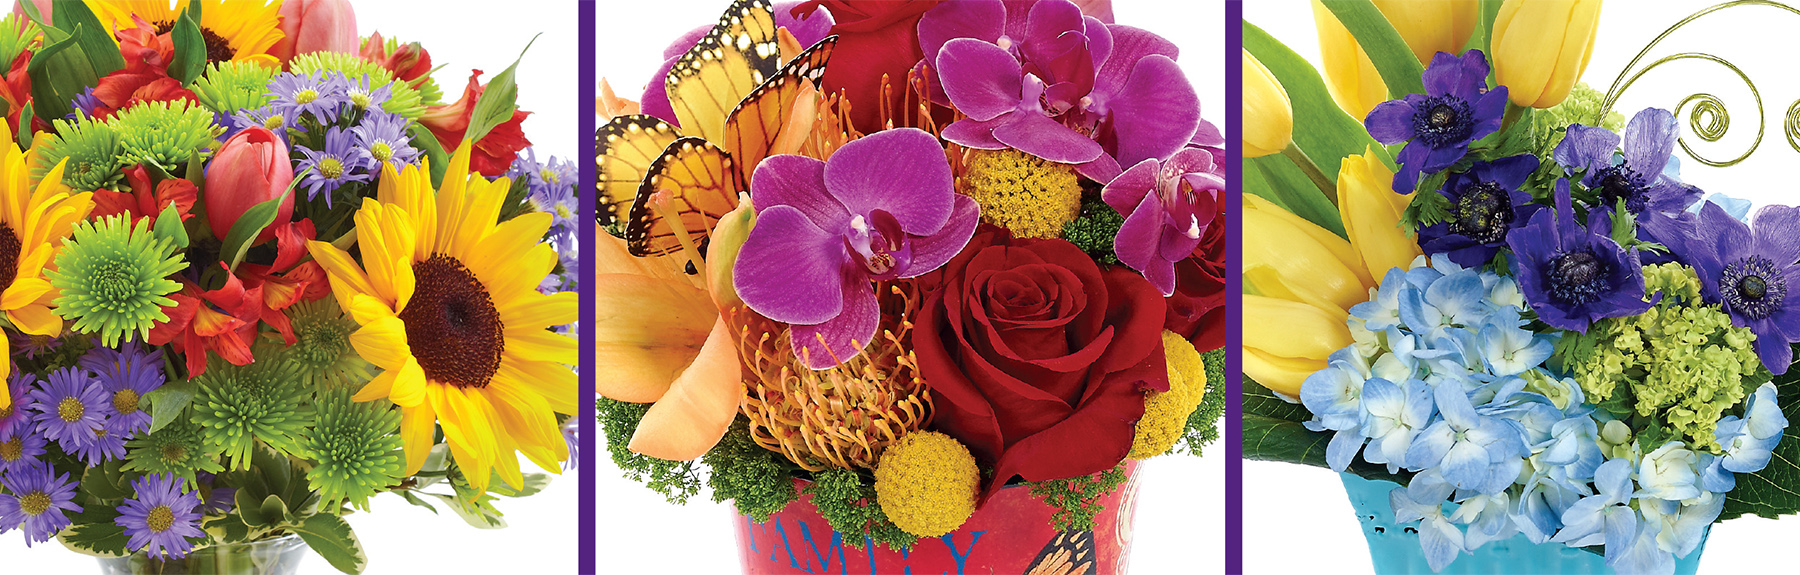 Bloomnet world class florists world wide delivery were passionate about helping retail professional florists thrive izmirmasajfo Choice Image